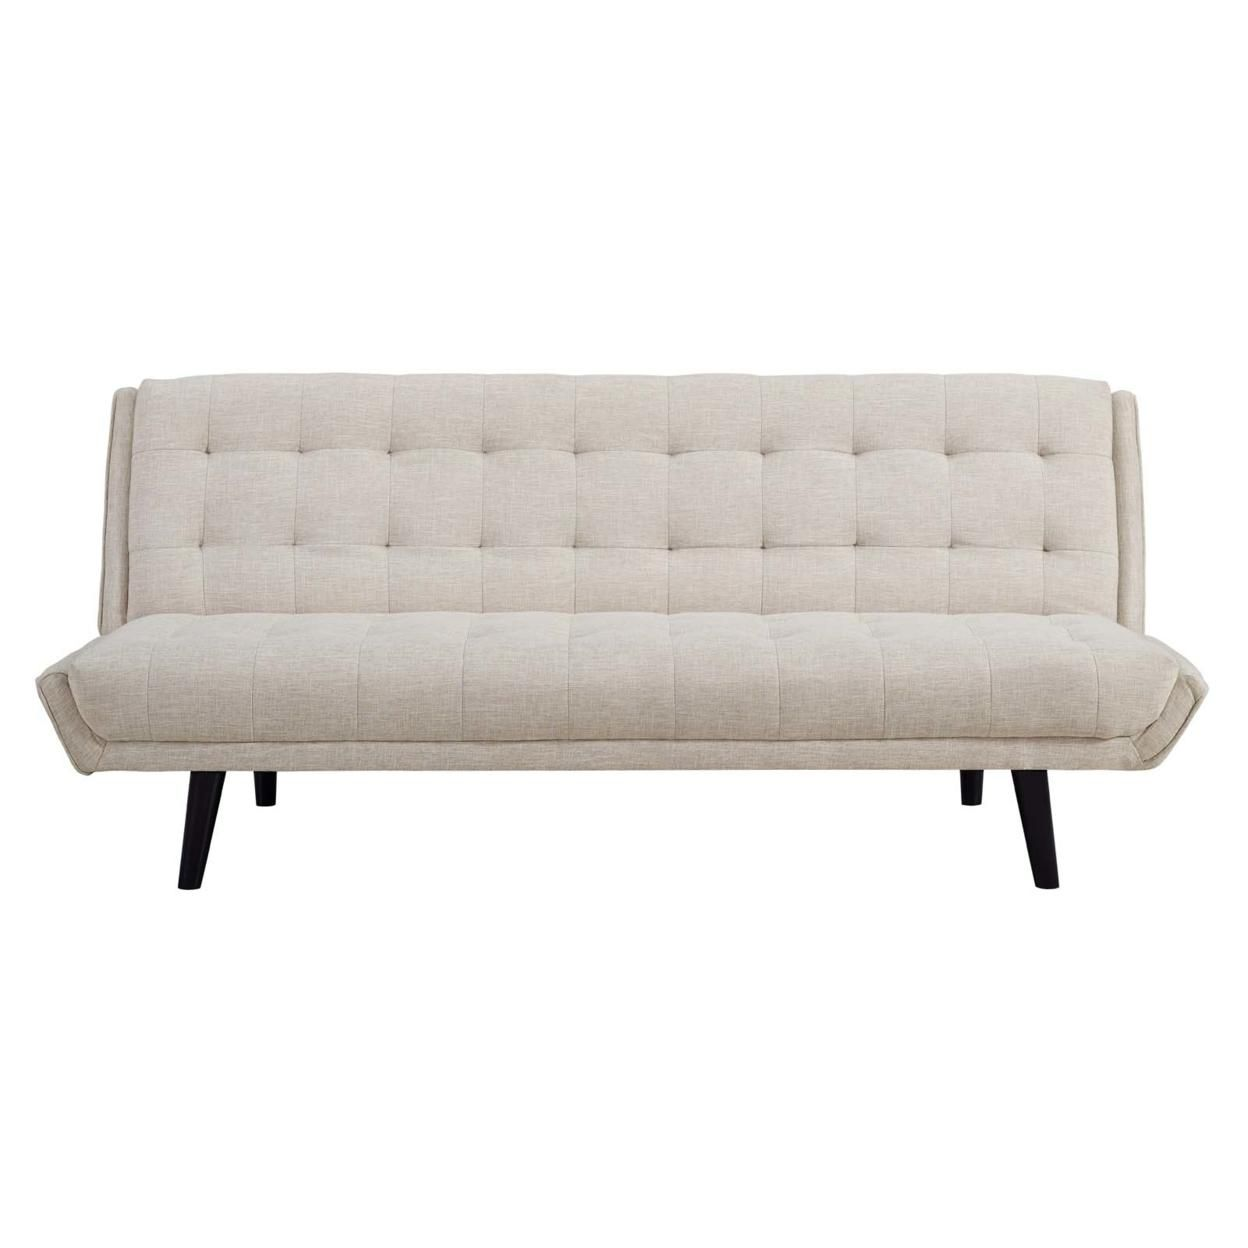 Glance Tufted Convertible Fabric Sofa Bed (3093-BEI)